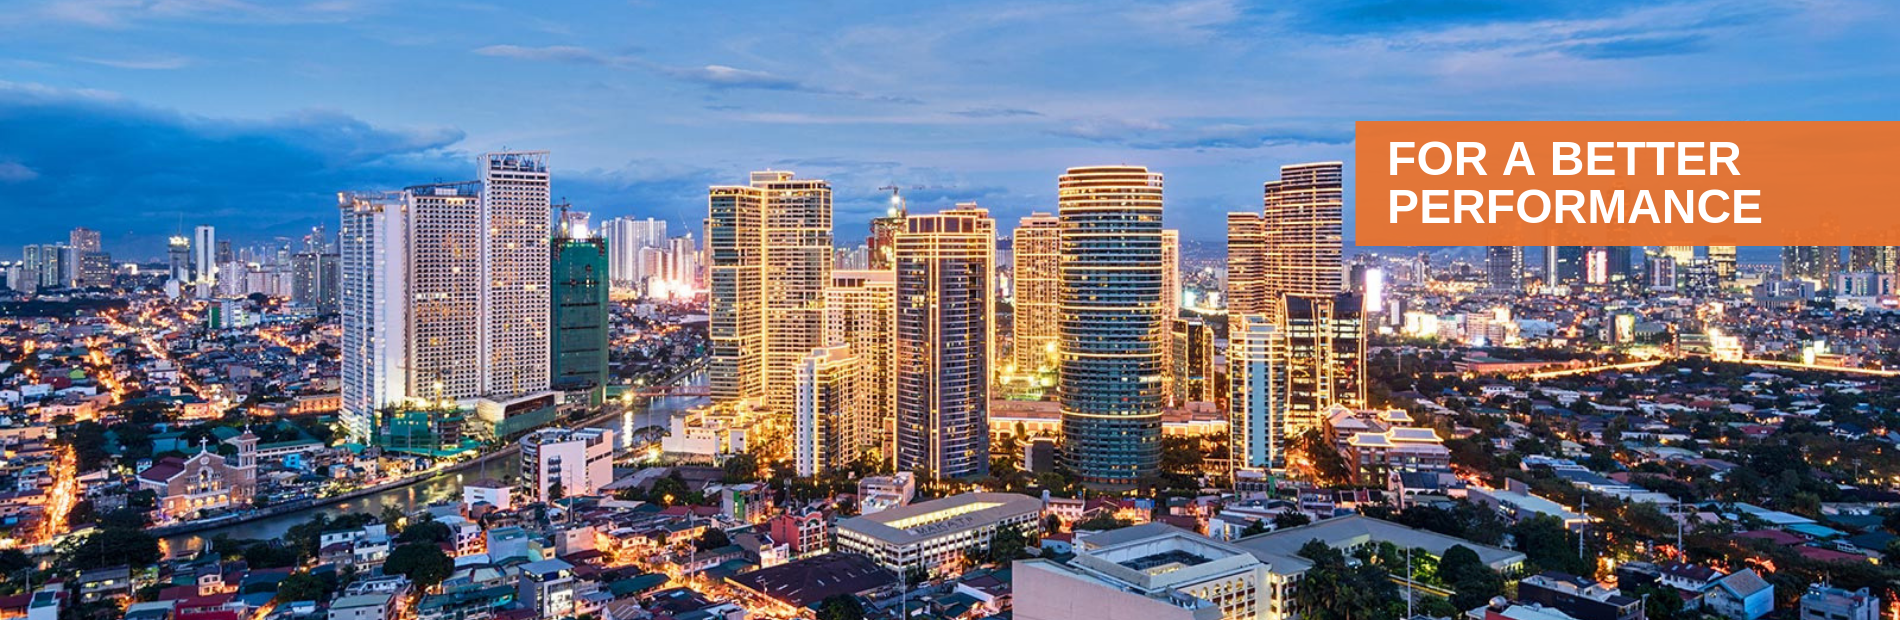 ATALIAN Global Services is present in the Philippines